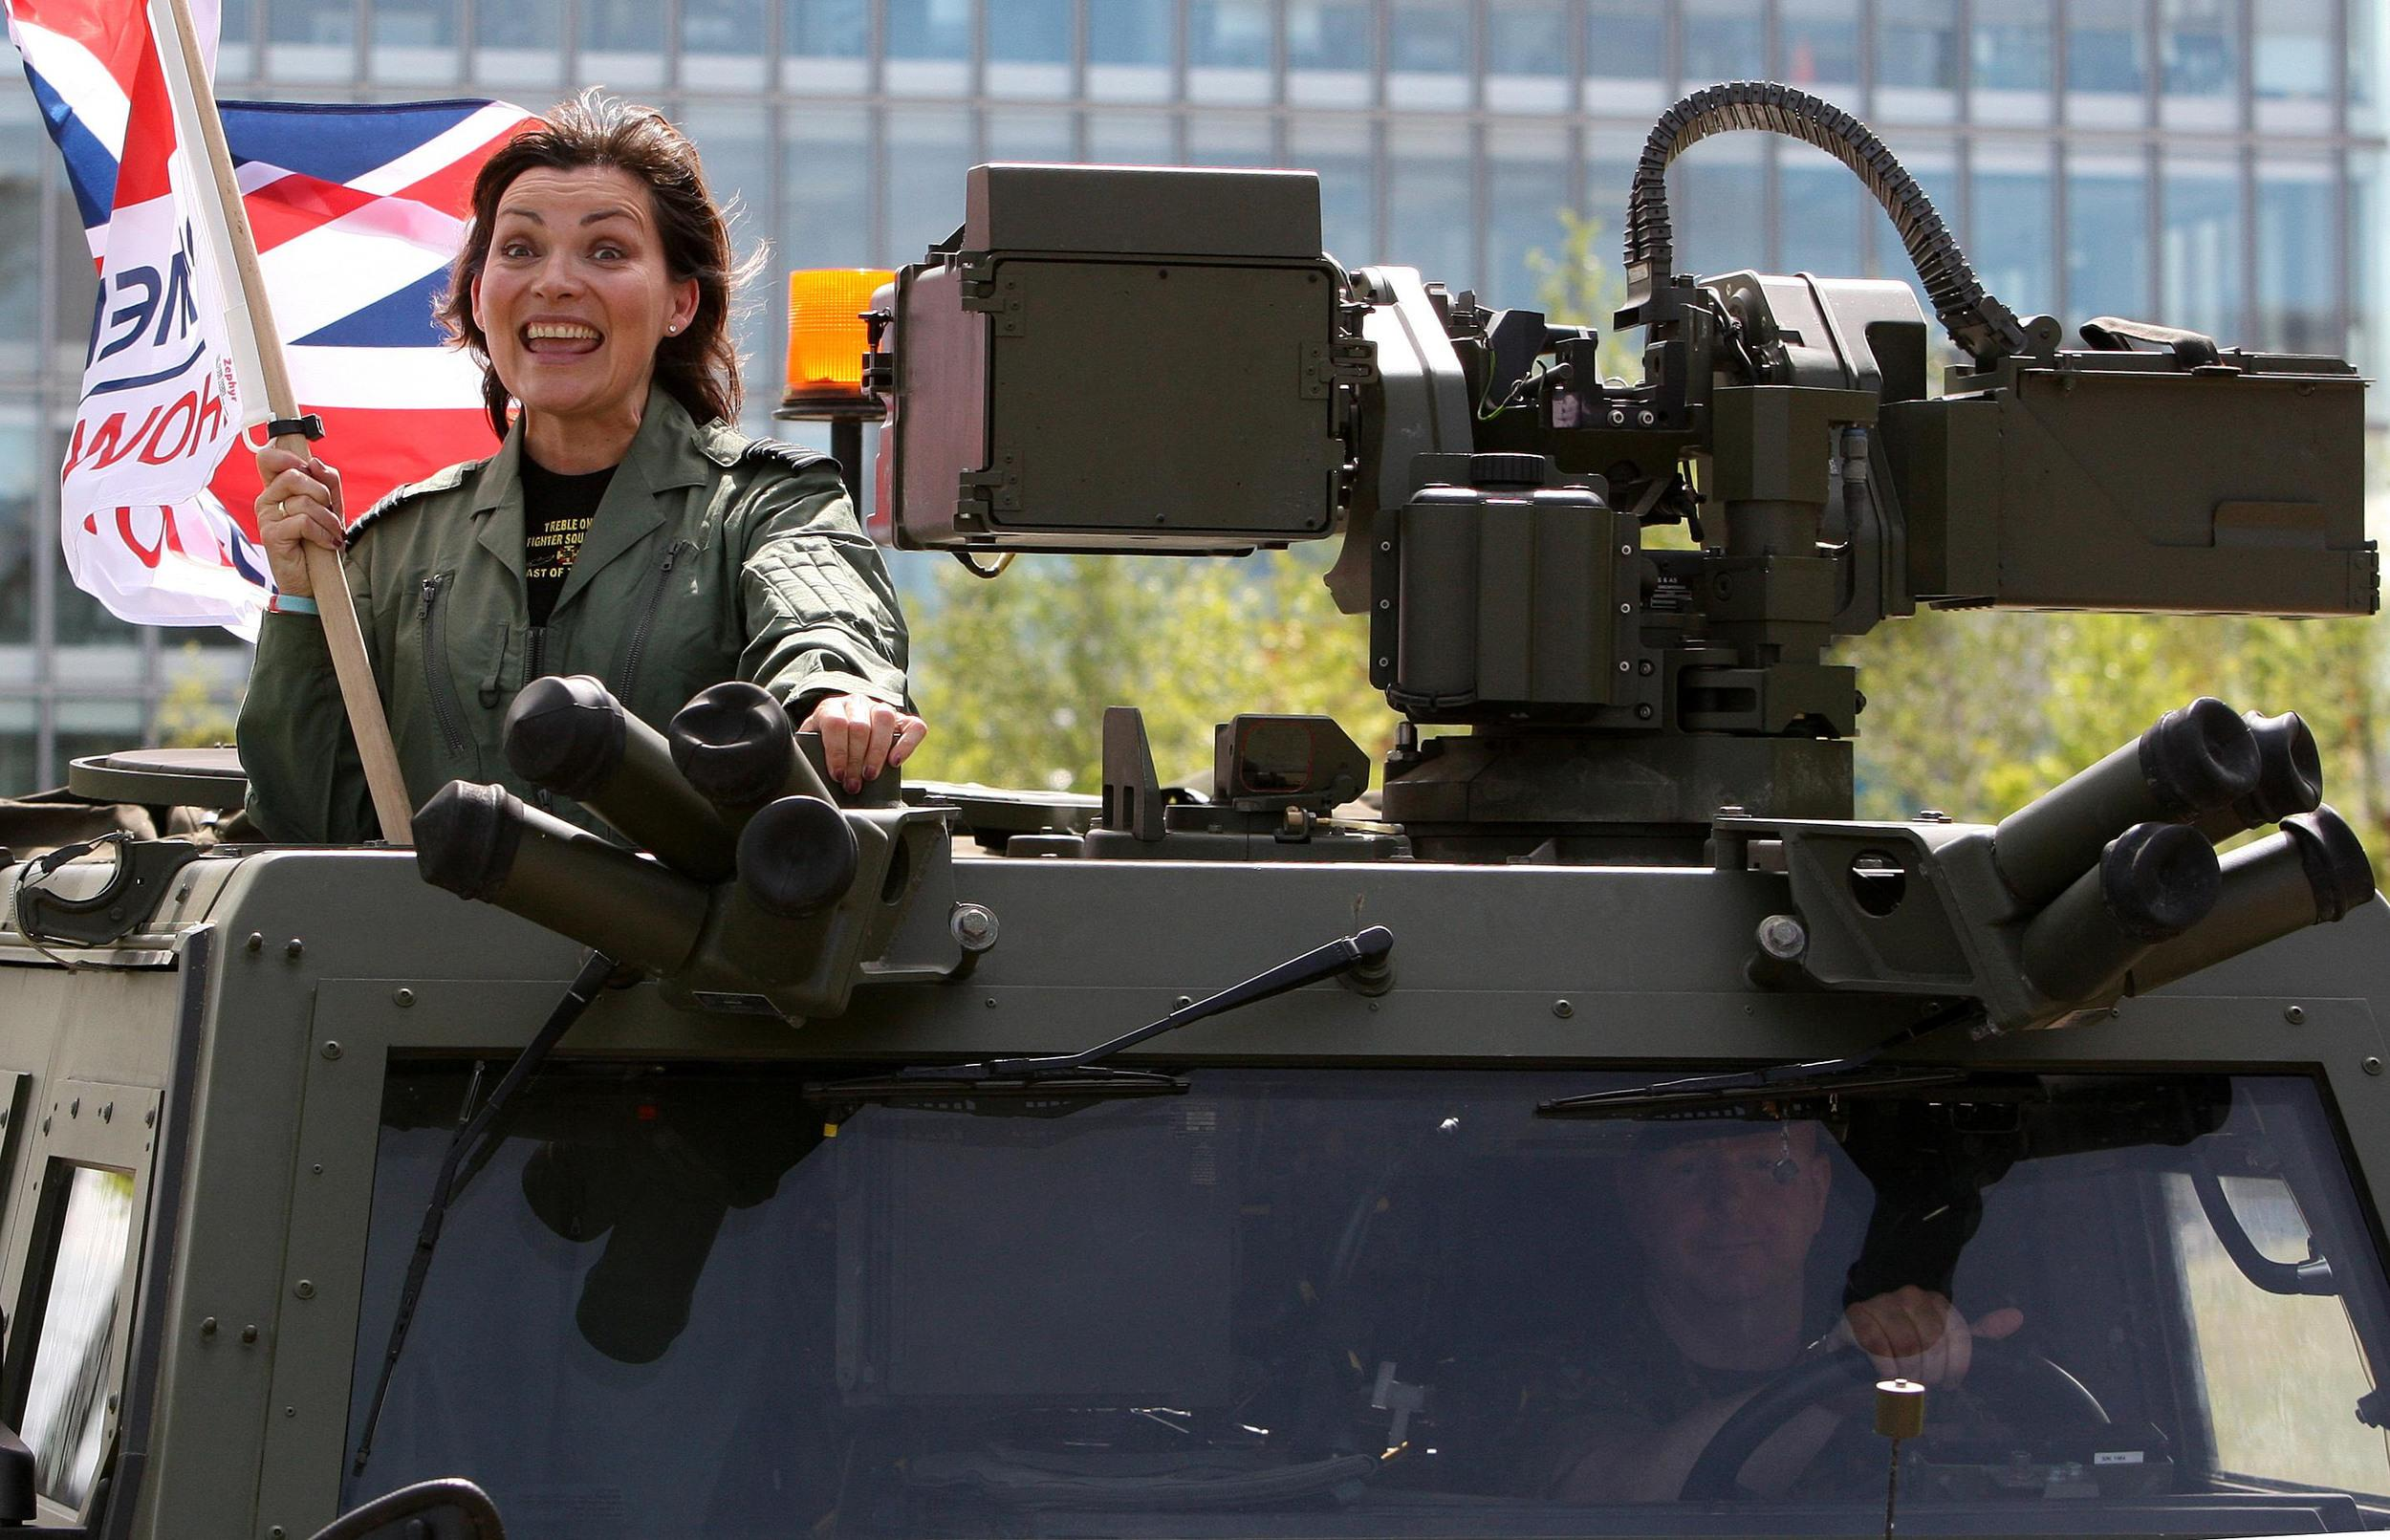 TV presenter Lorraine Kelly rides in a tank as she helps to promote Armed Forces Day, she set off from RAF Leuchars in Fife, flying by Royal Navy helicopter to Scotstoun shipyard in Glasgow.